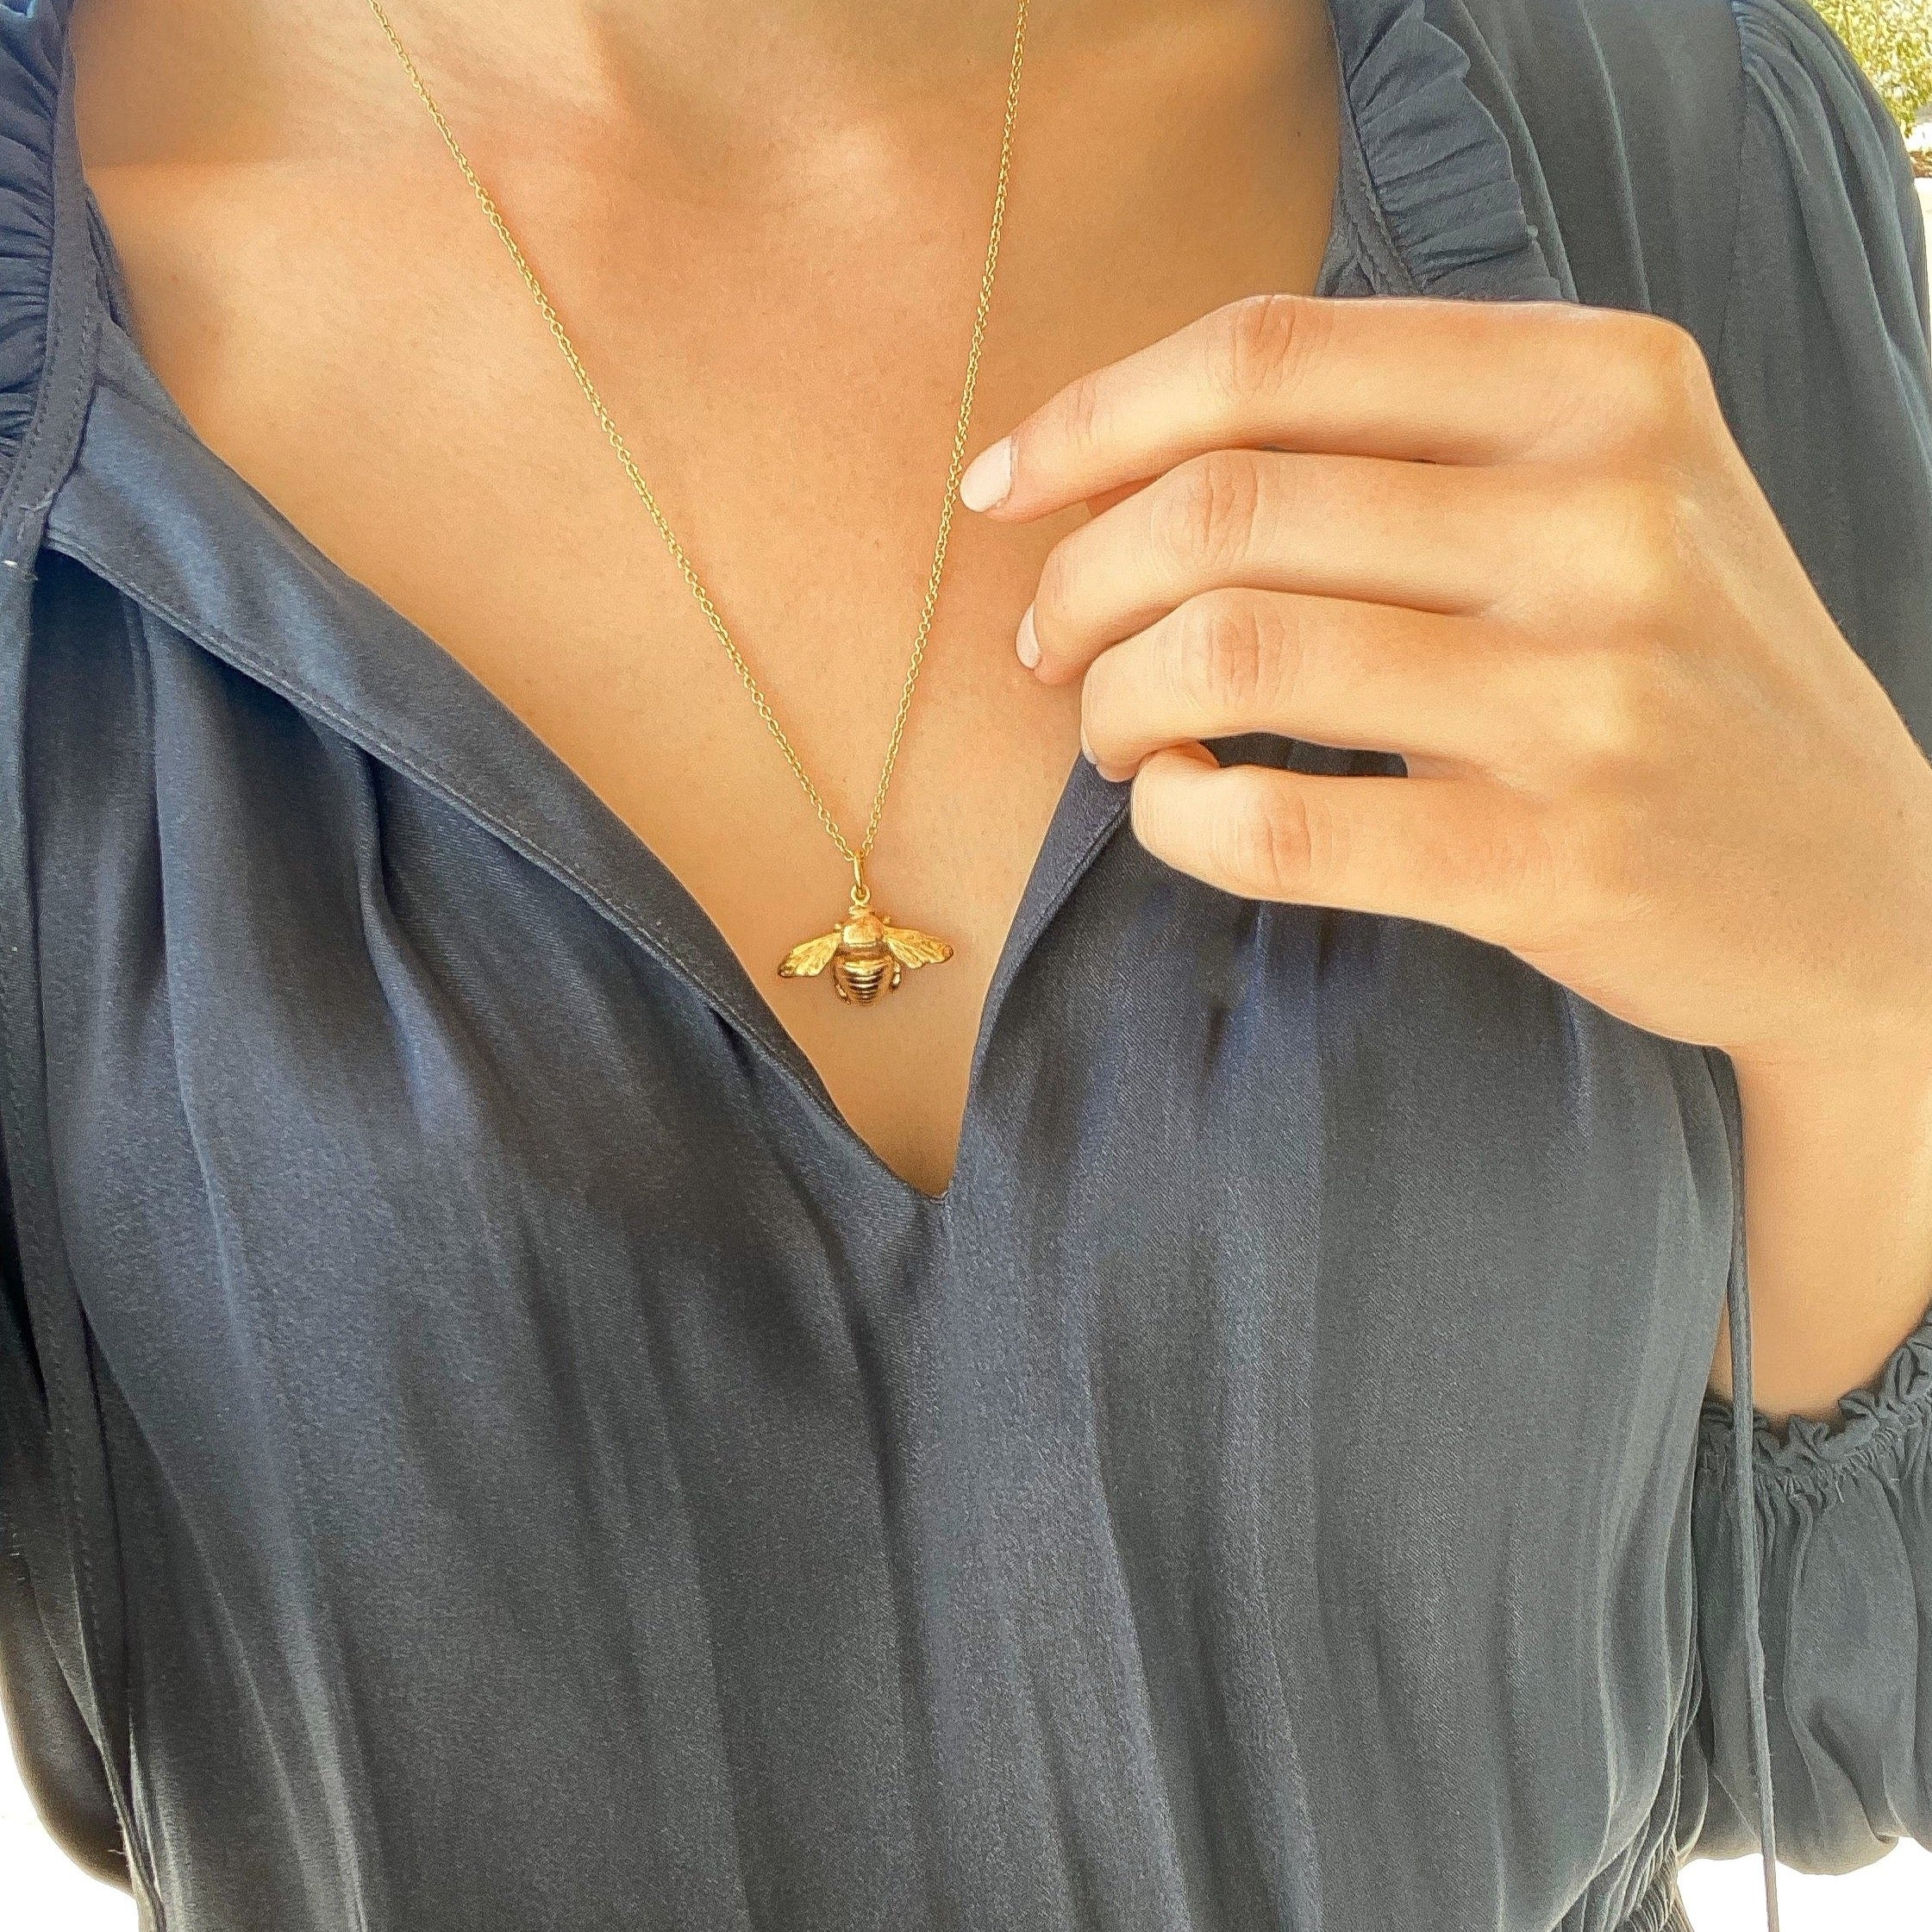 Bumble Bee Necklace Gold